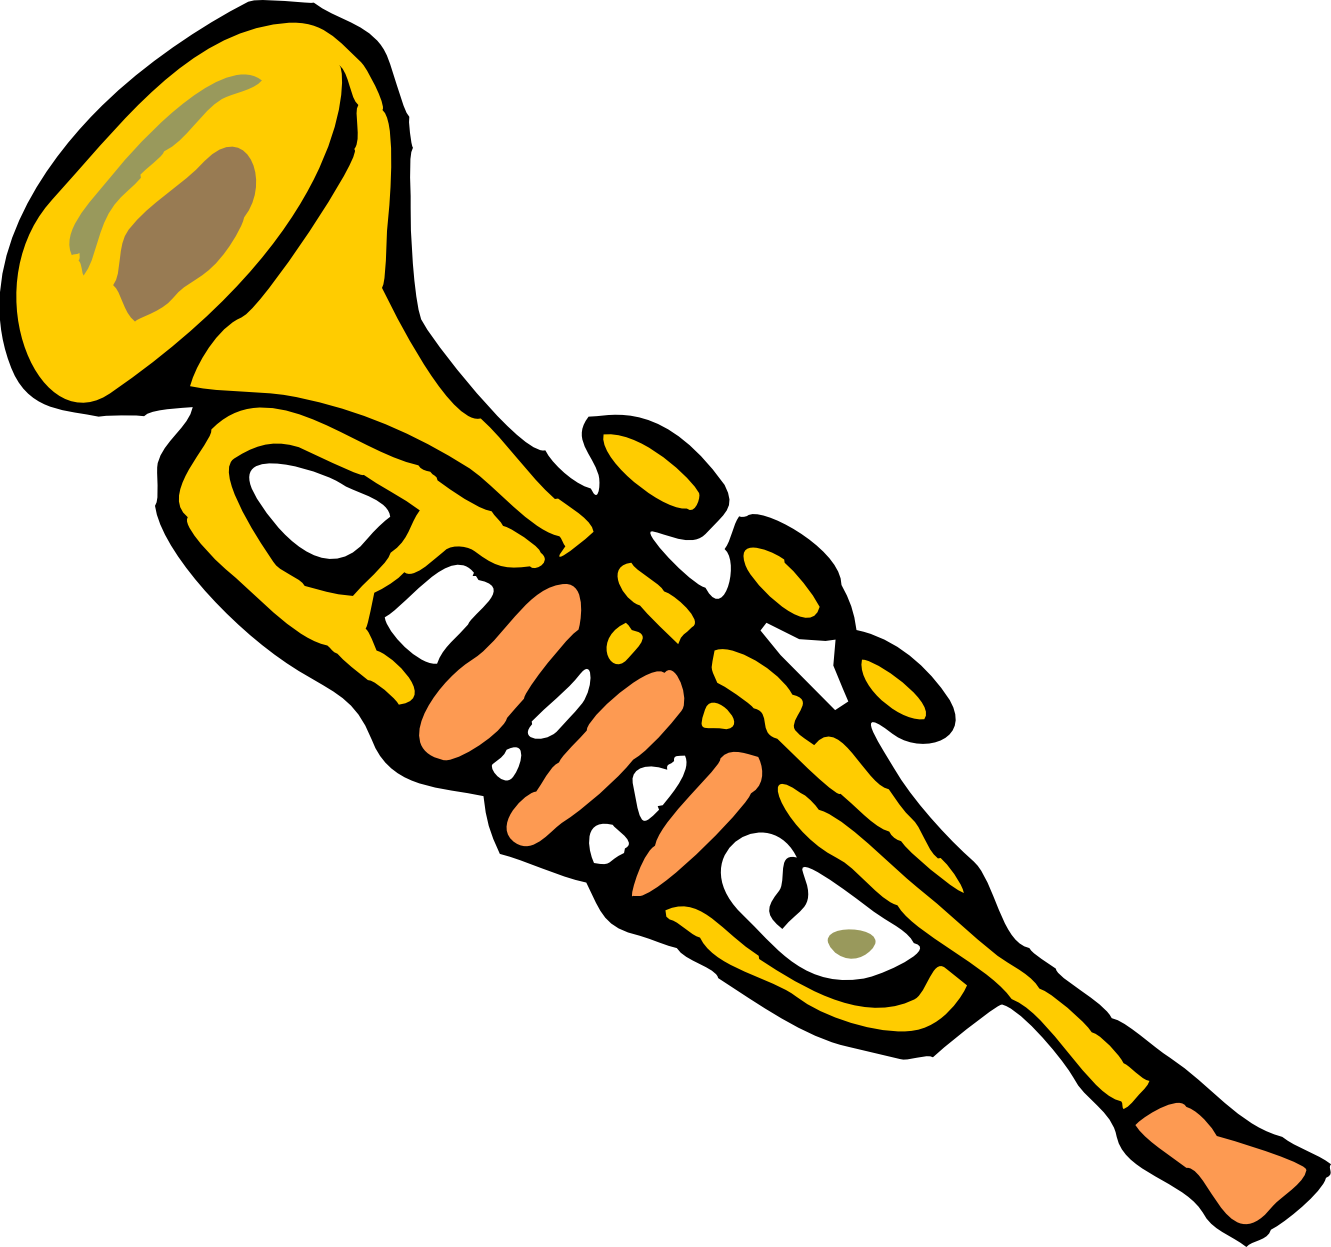 Horn clipart jpeg. Cartoon trumpet